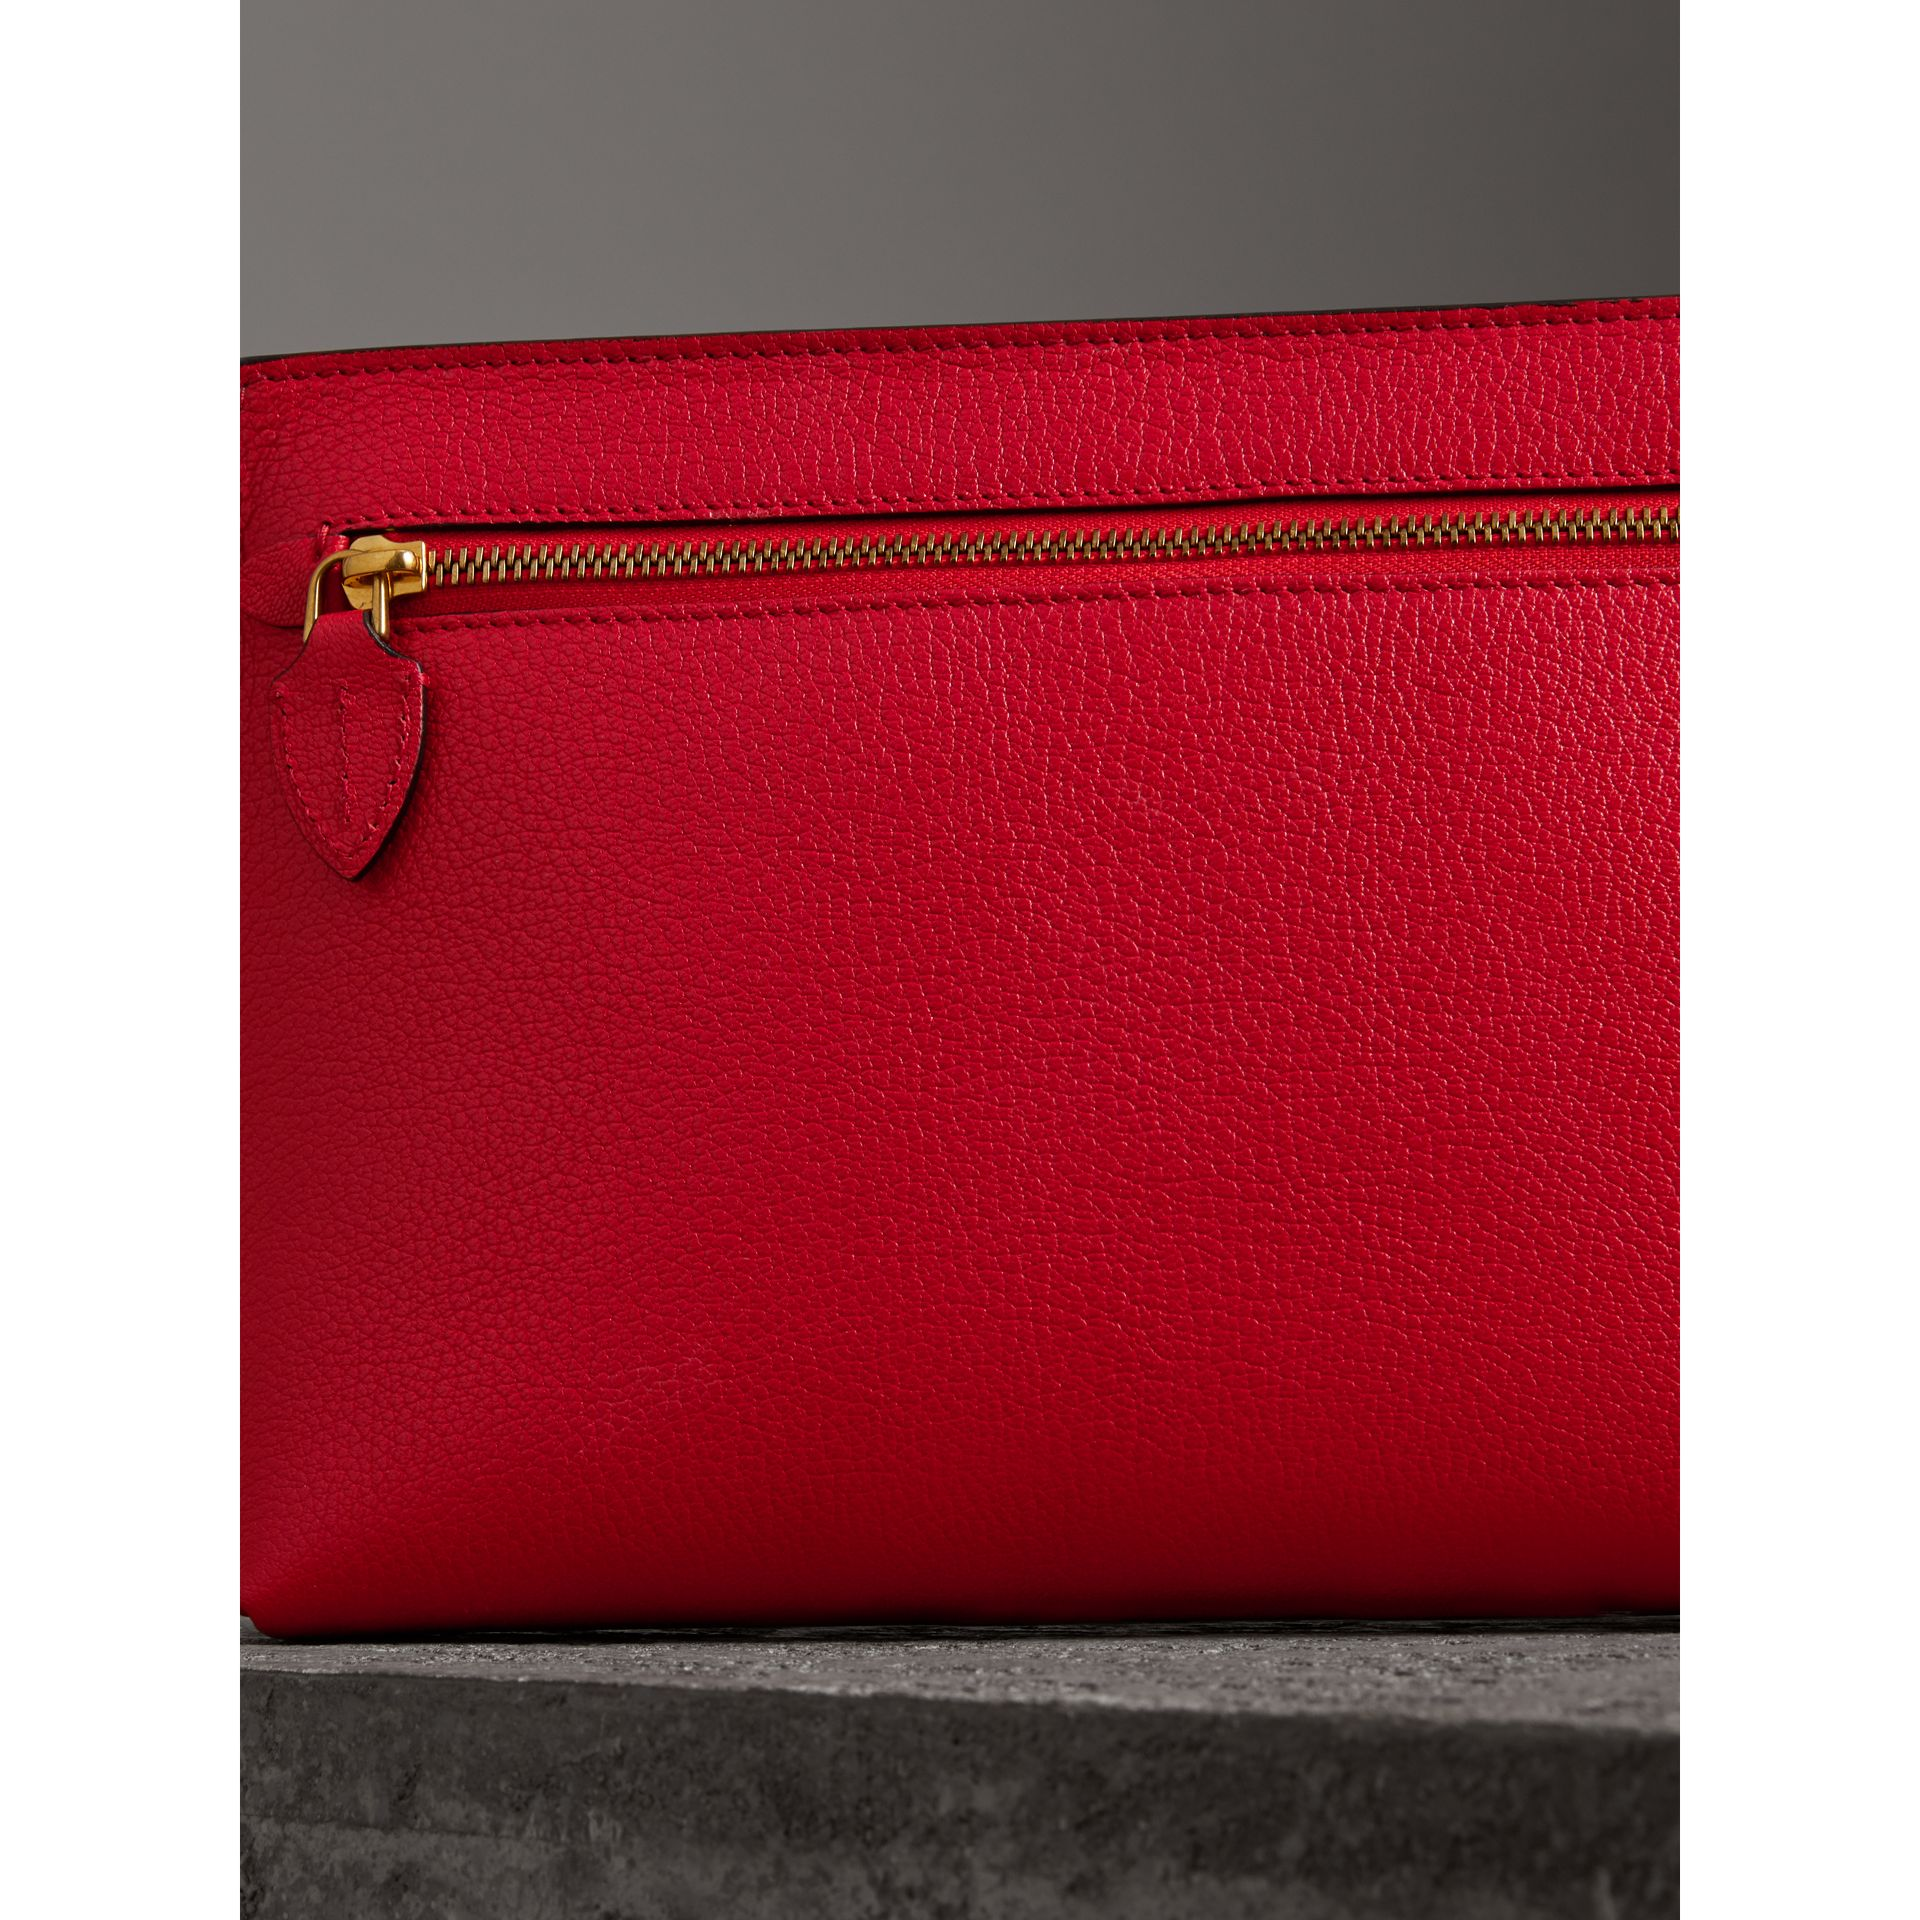 Grainy Leather Wristlet Clutch in Bright Red - Women | Burberry Hong Kong - gallery image 2